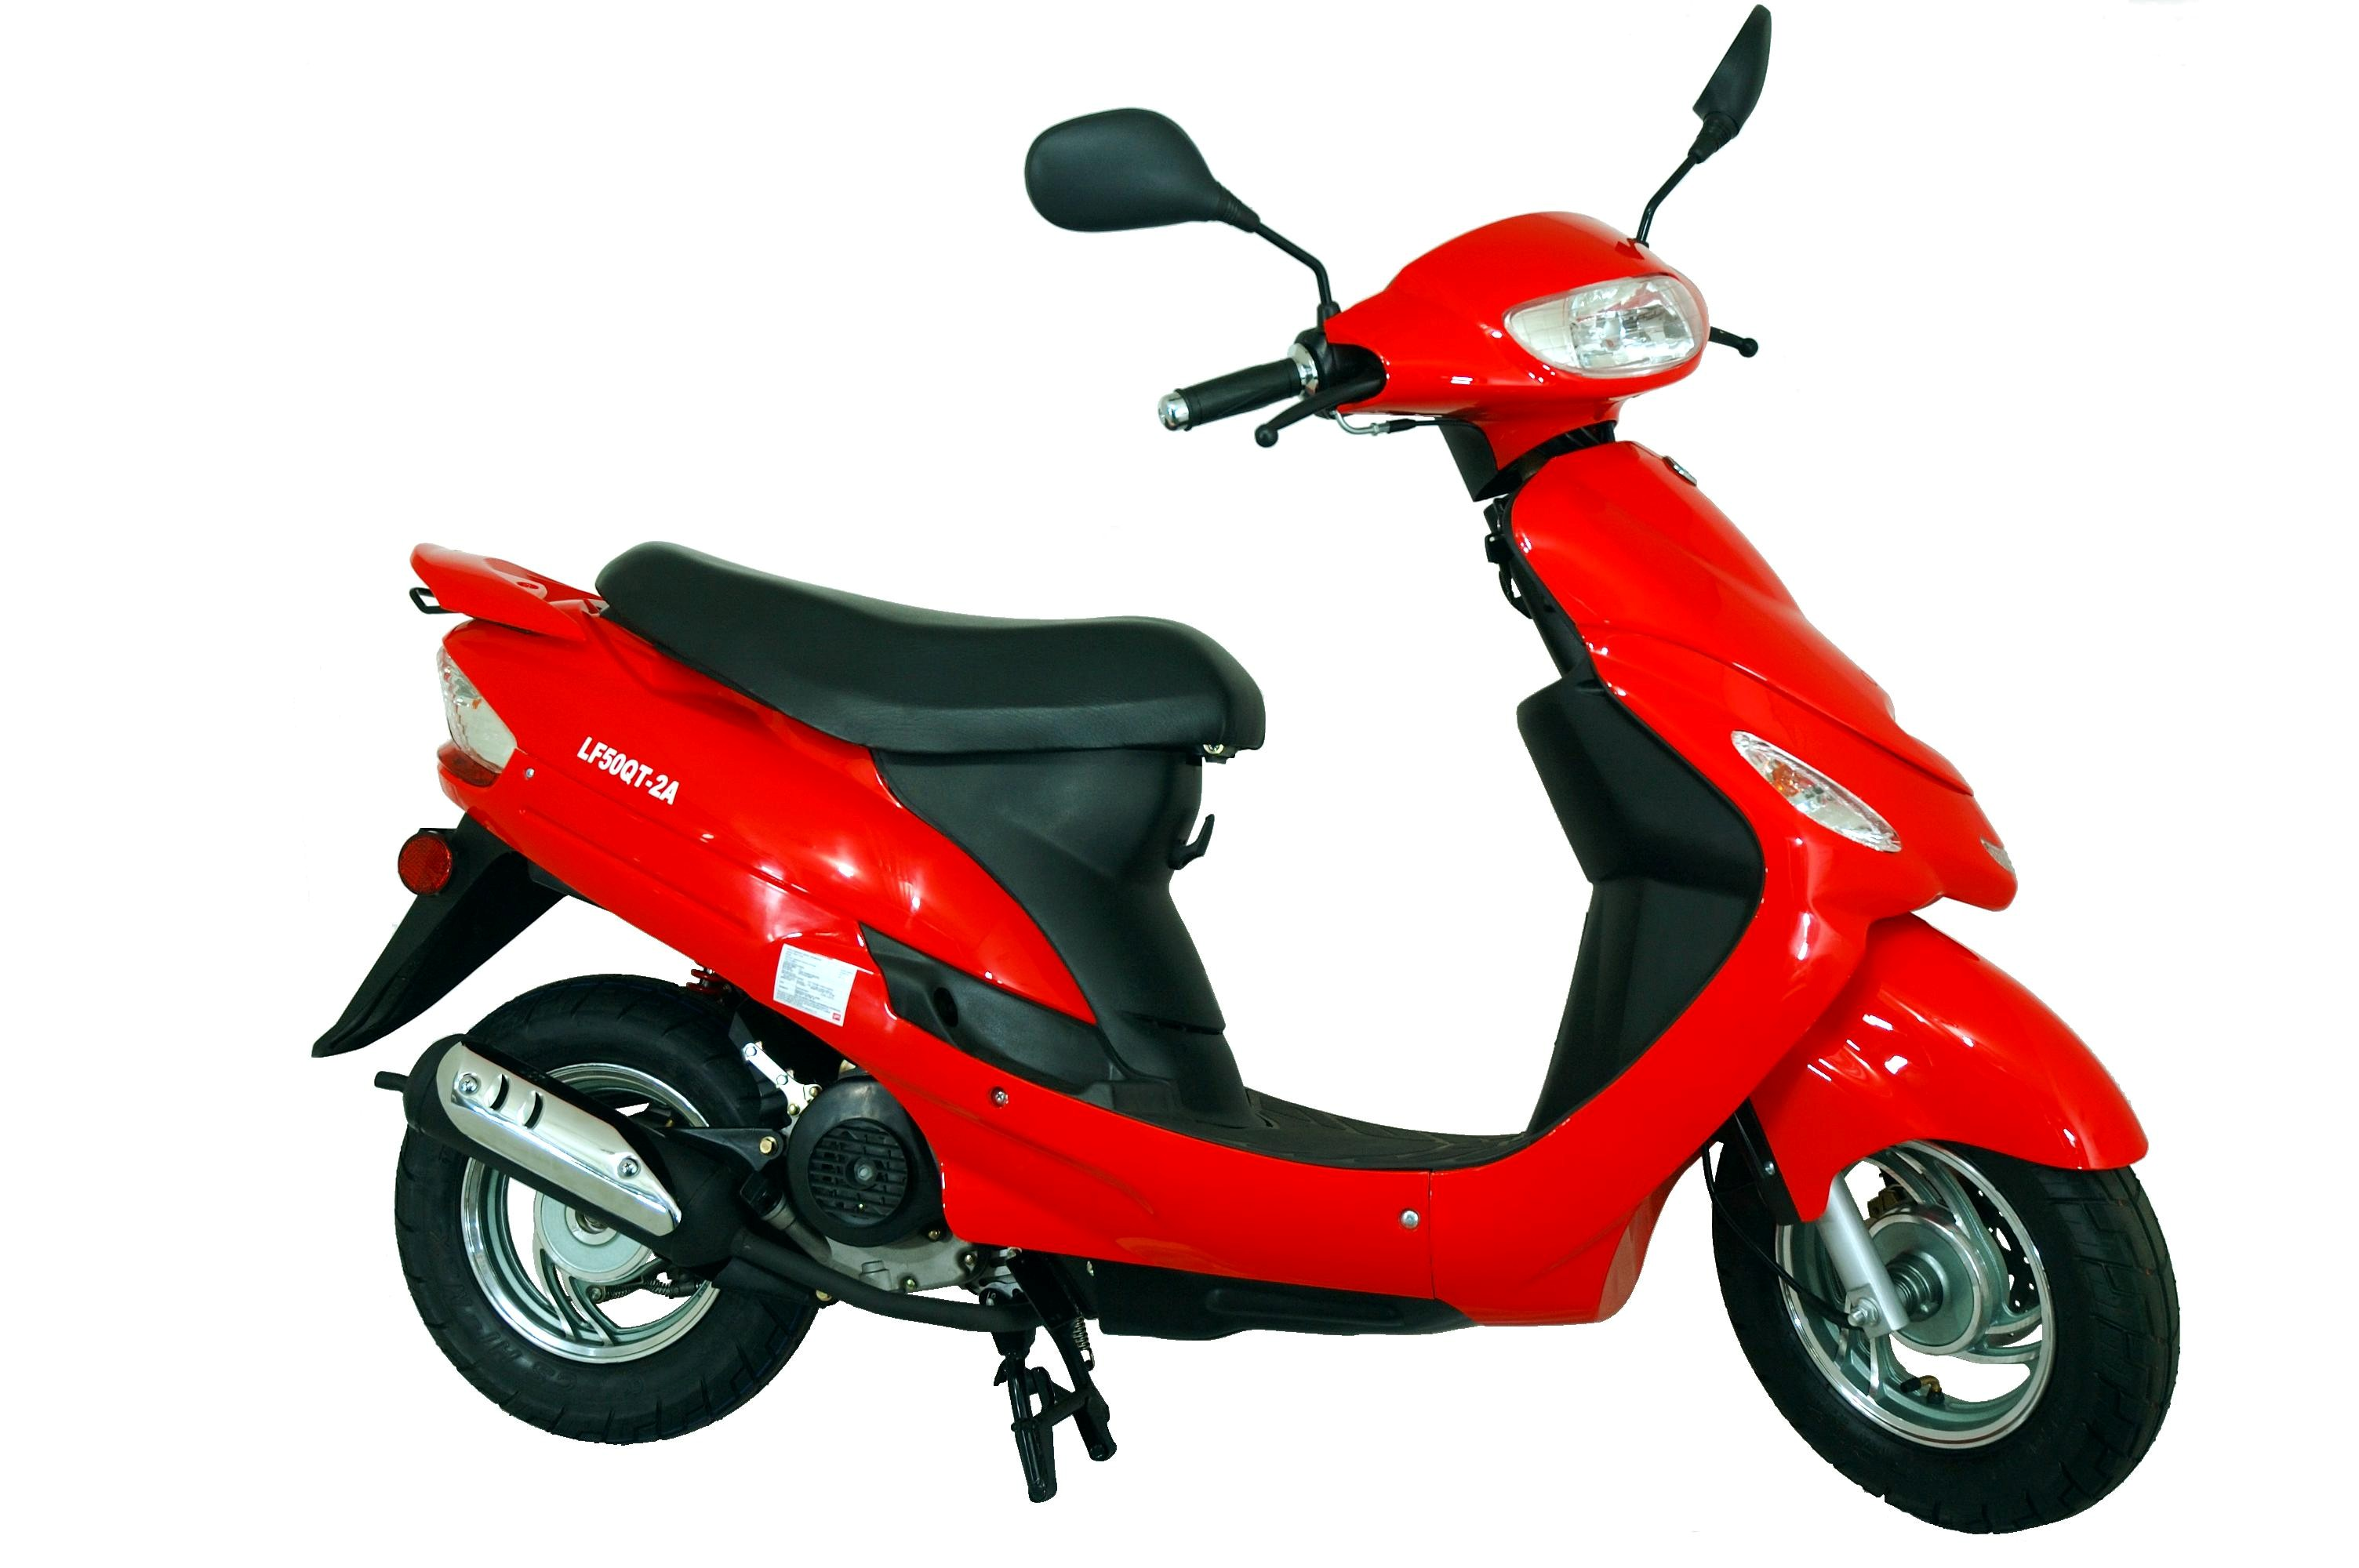 Lifan Scooter #4